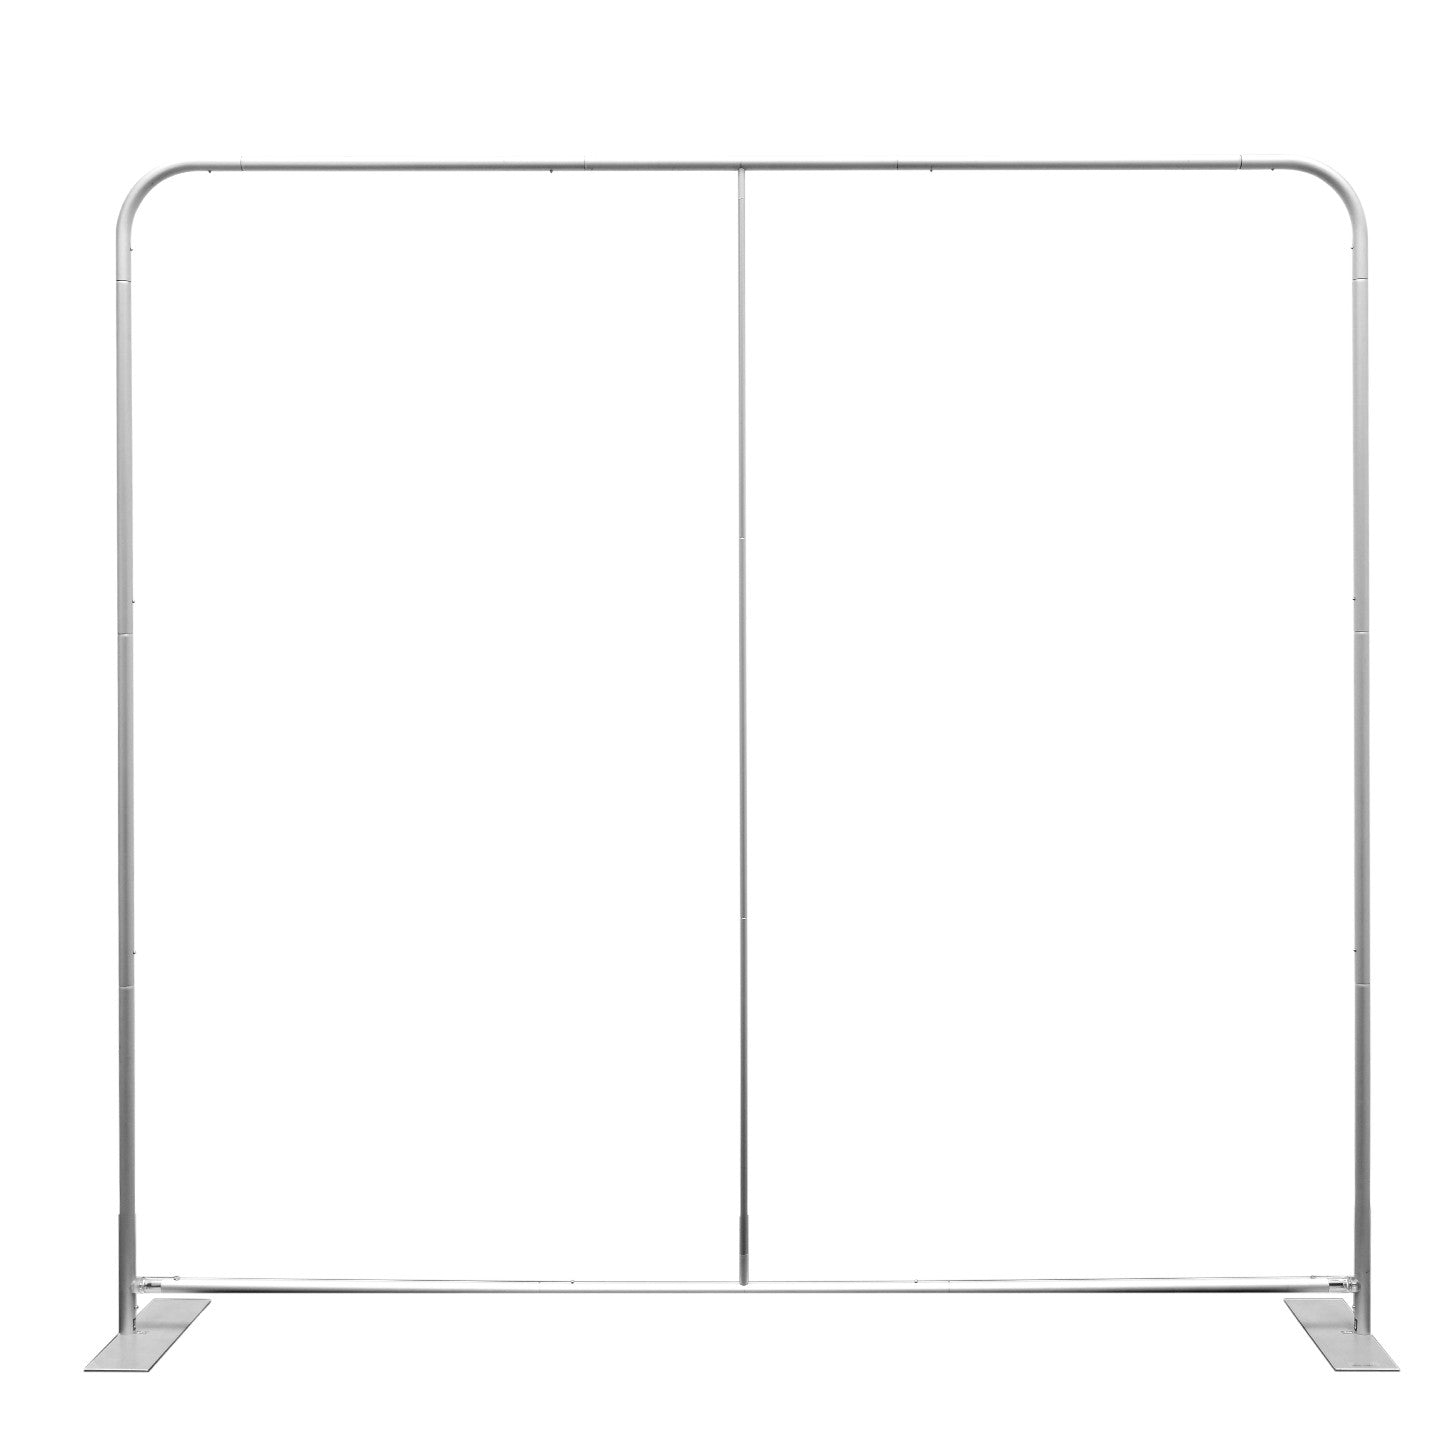 8 booti straight trade show display frame only - Display Frame